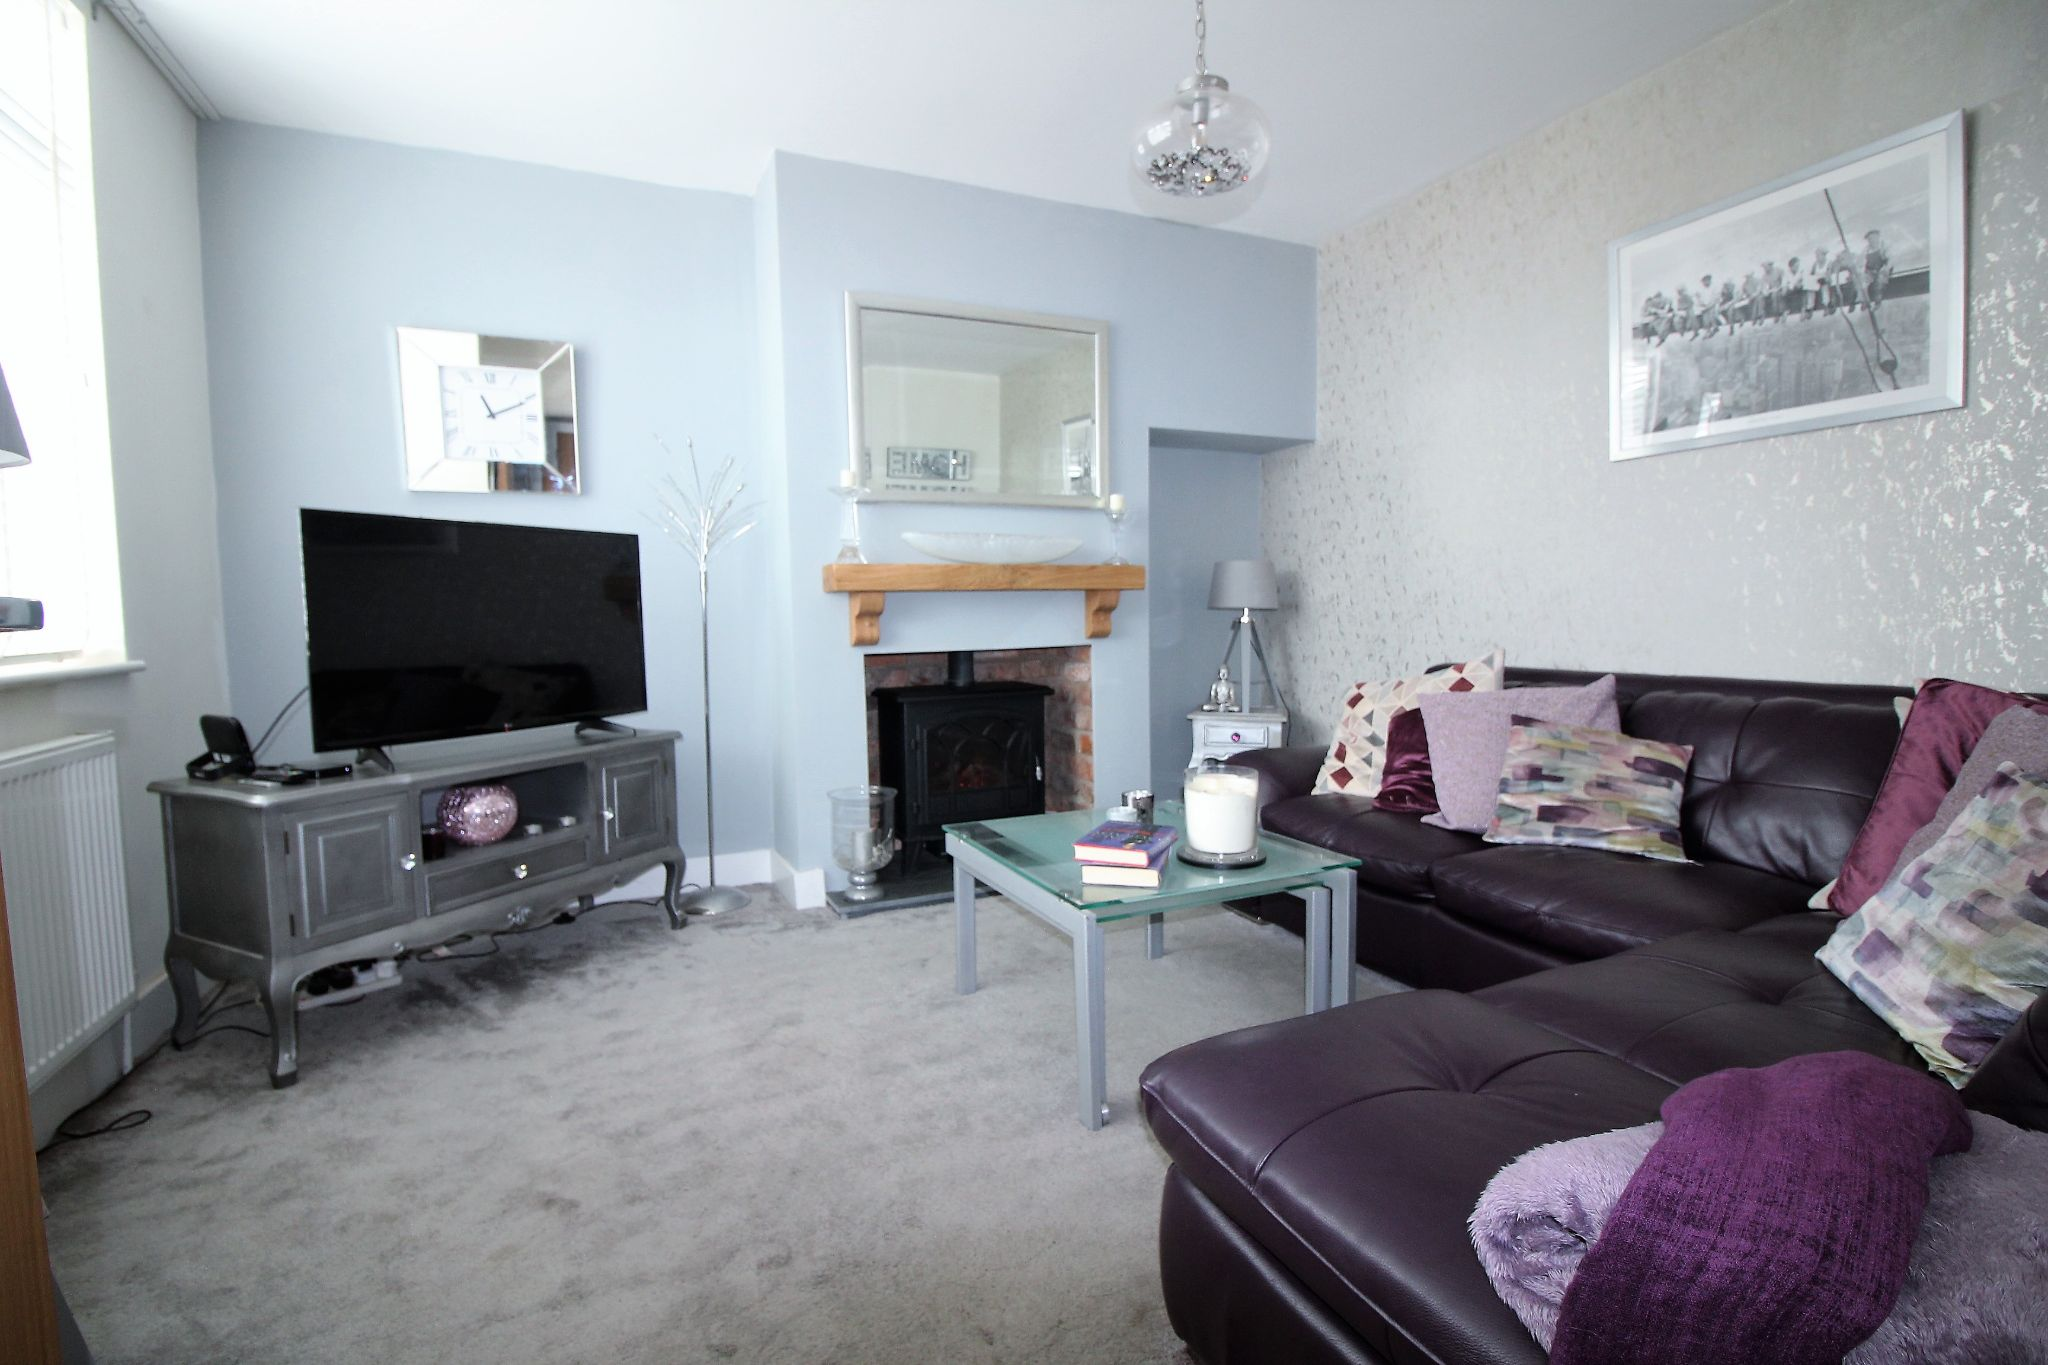 2 bedroom end terraced house For Sale in Solihull - Photograph 2.